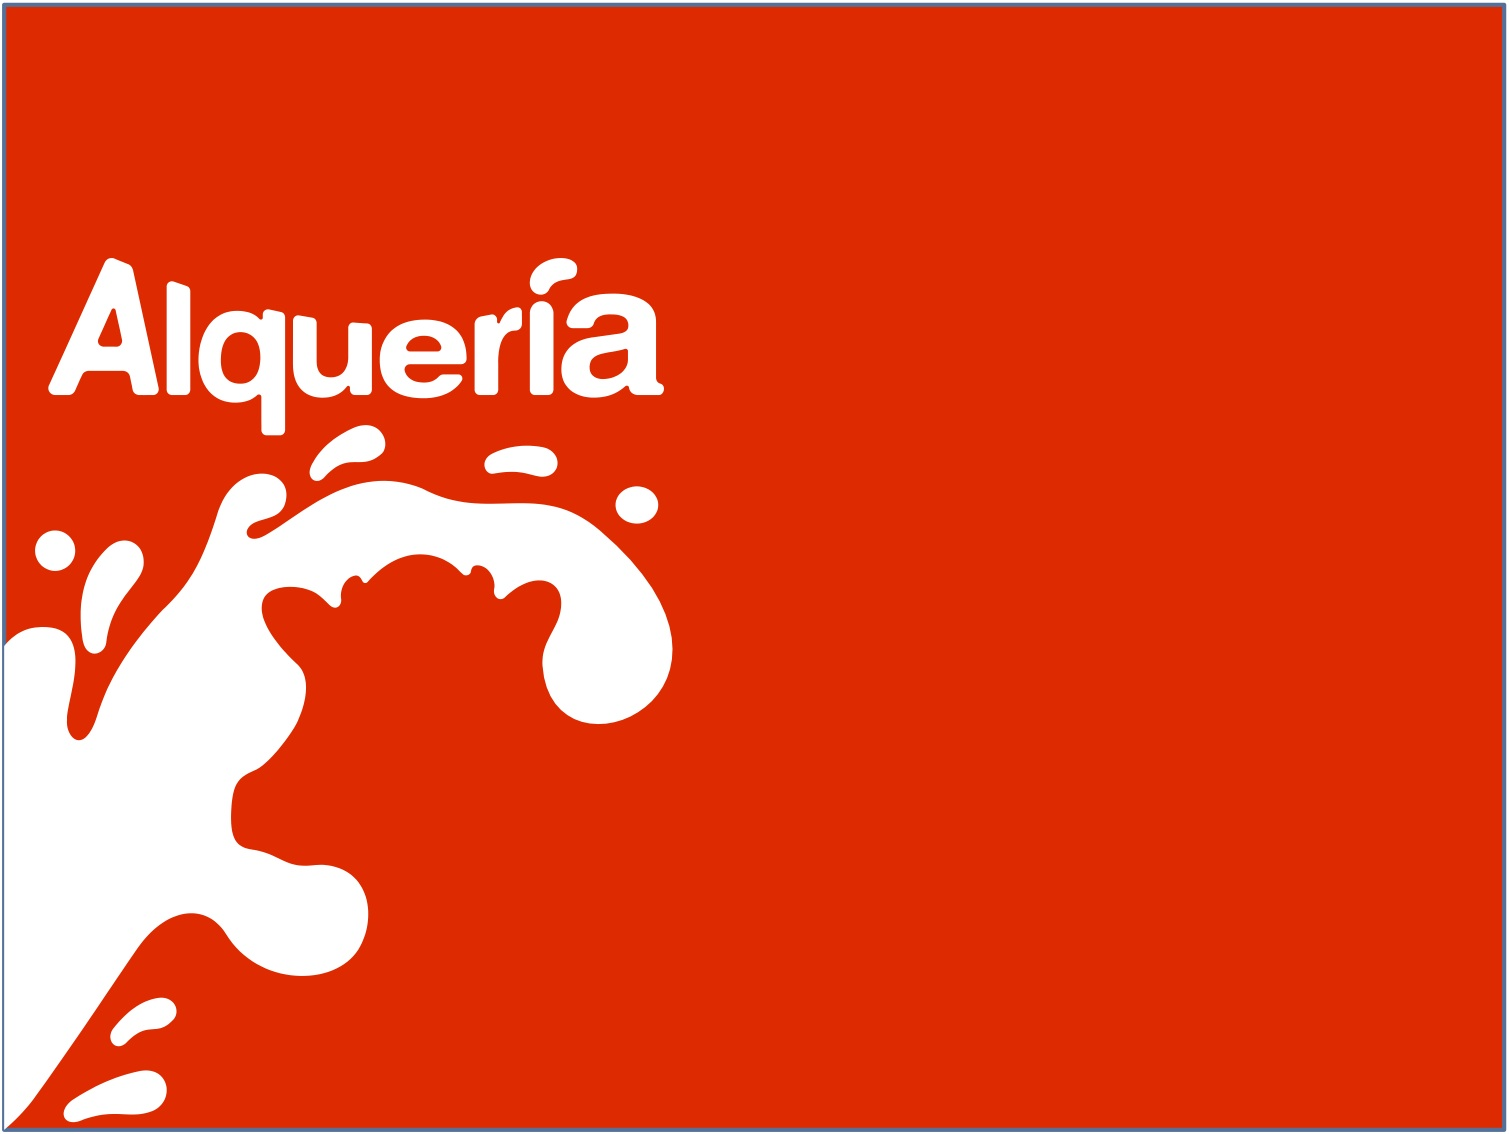 Alqueria Logo photo - 1